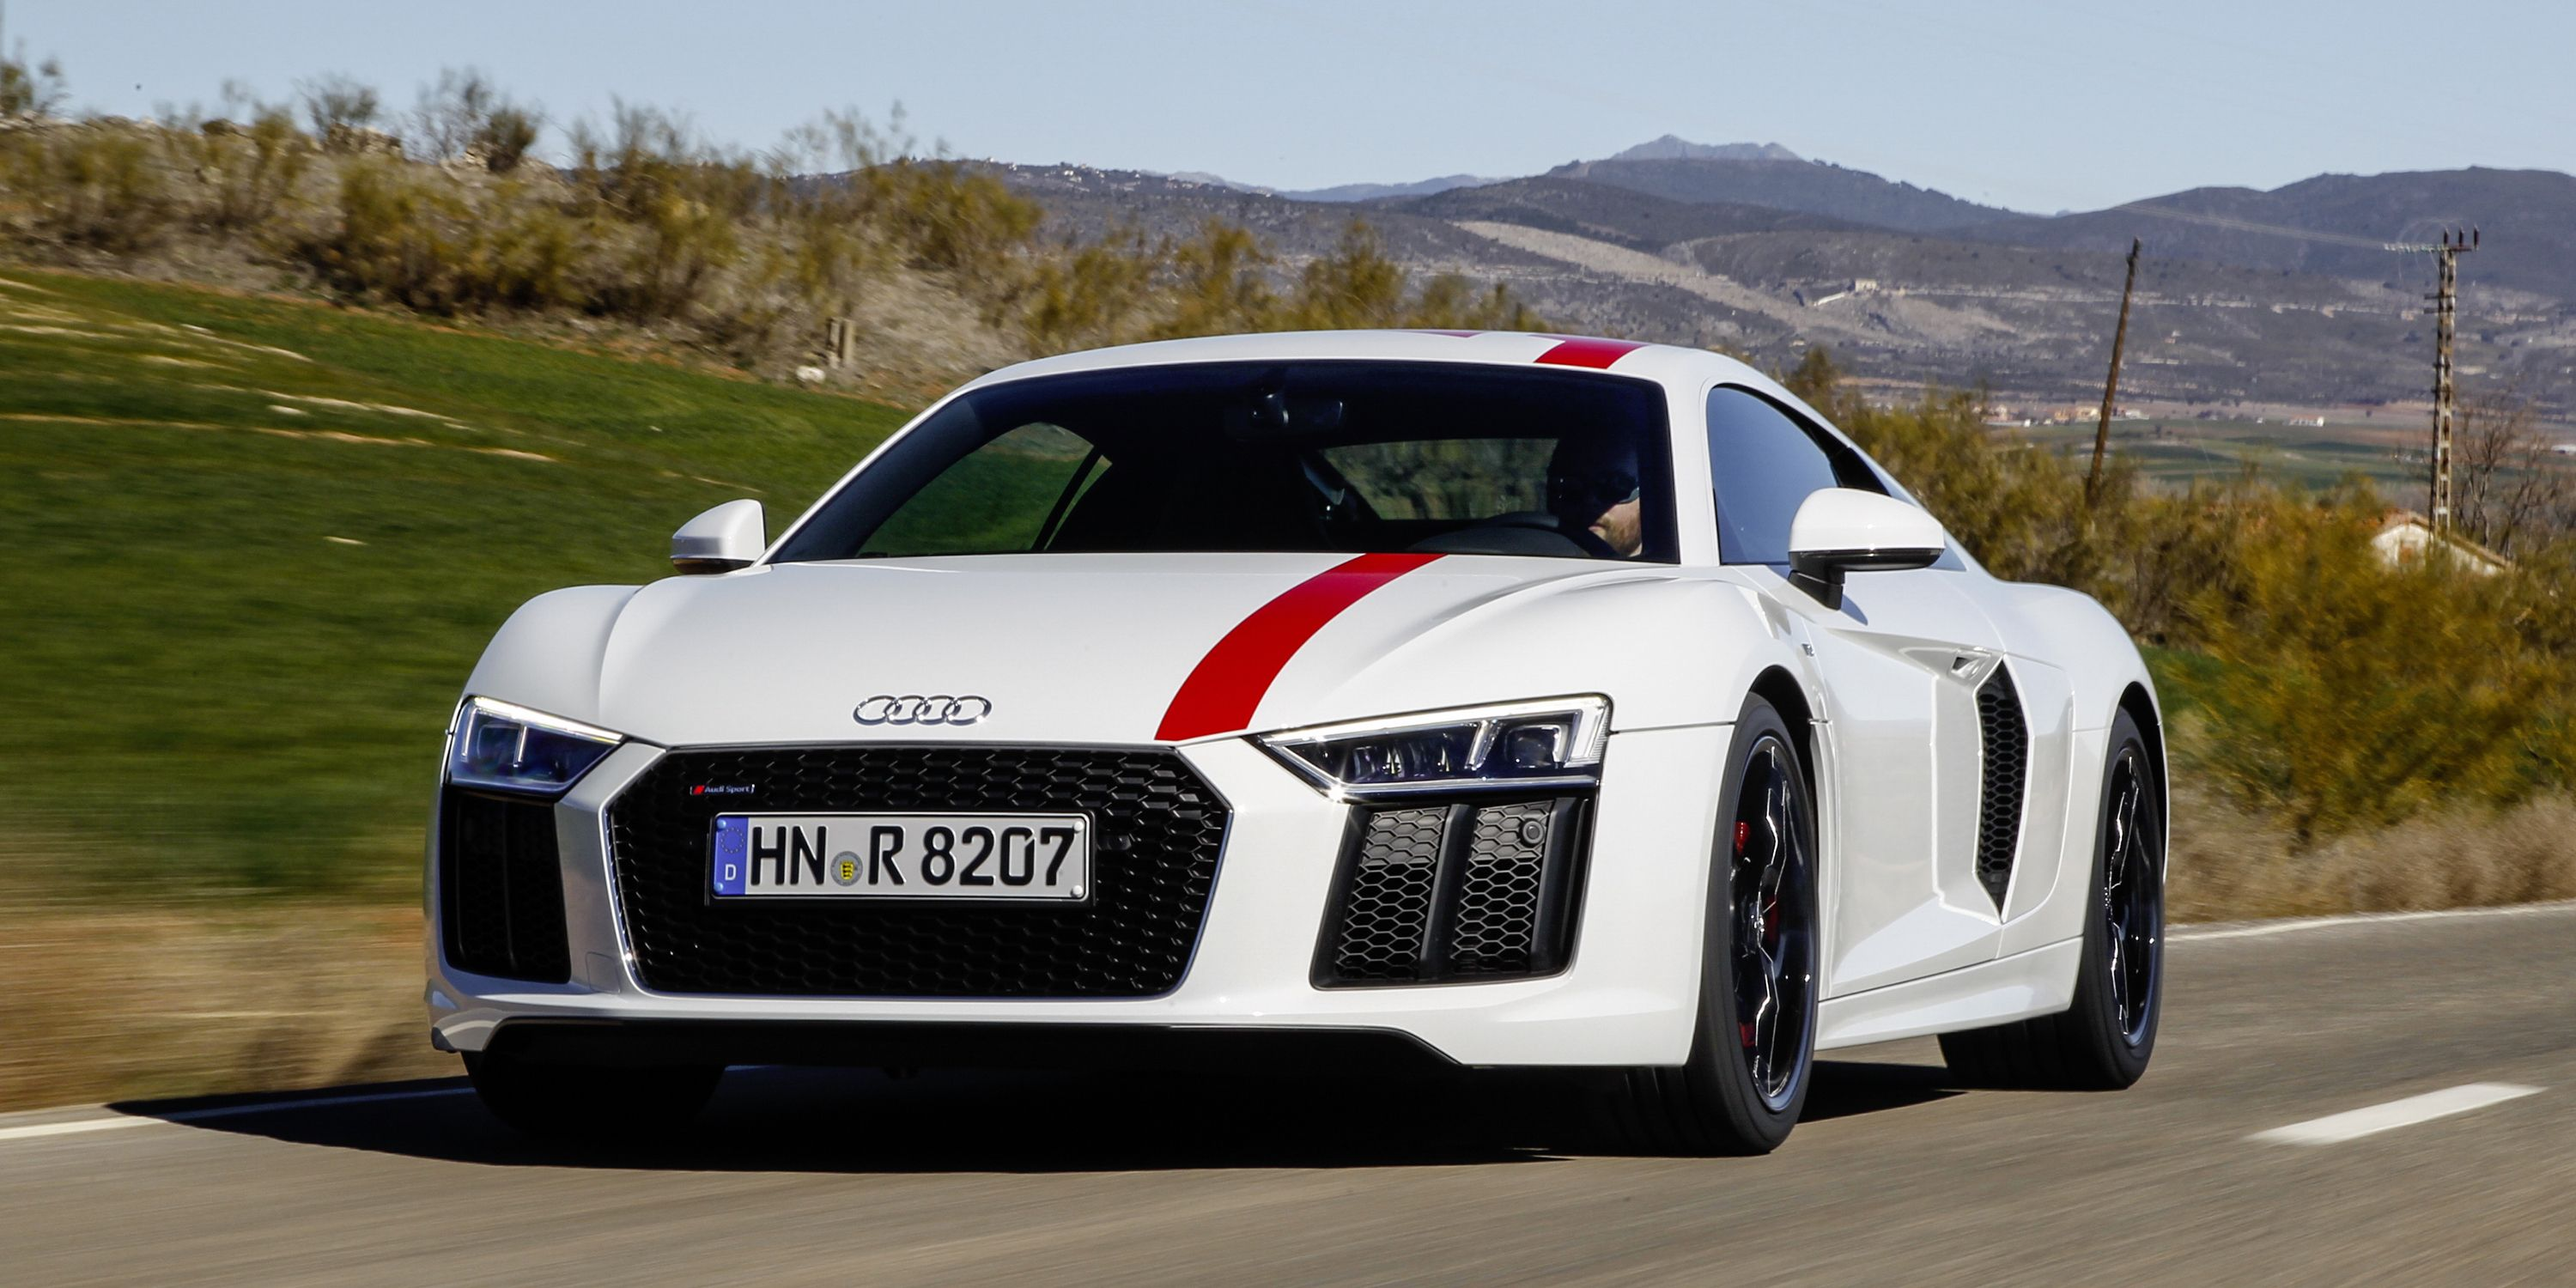 Buy an Audi R8 in Rear Wheel Drive Save $26 000